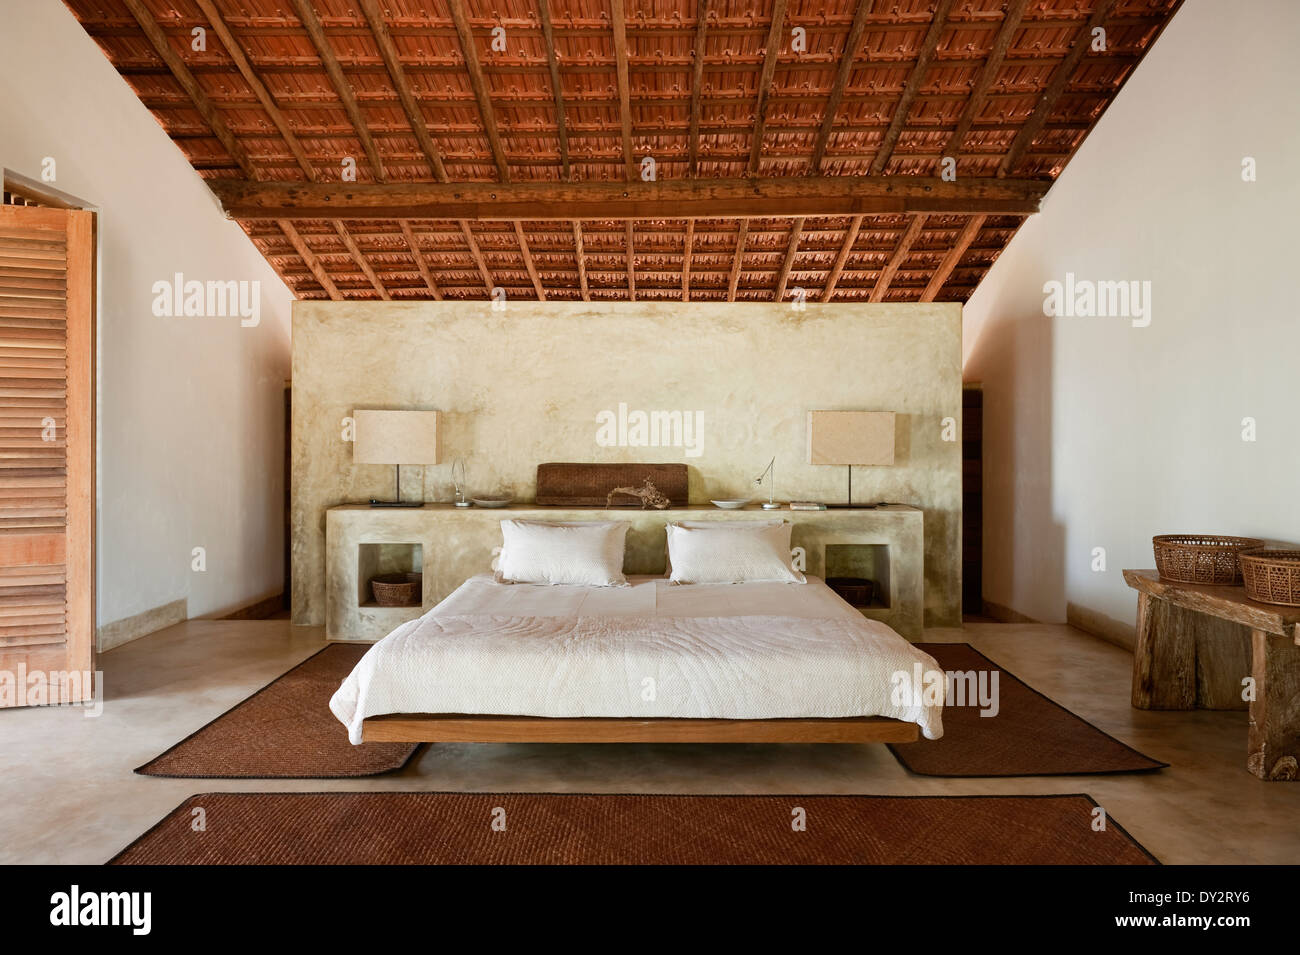 Beamed bedroom of Goan beach house retreat, India - Stock Image